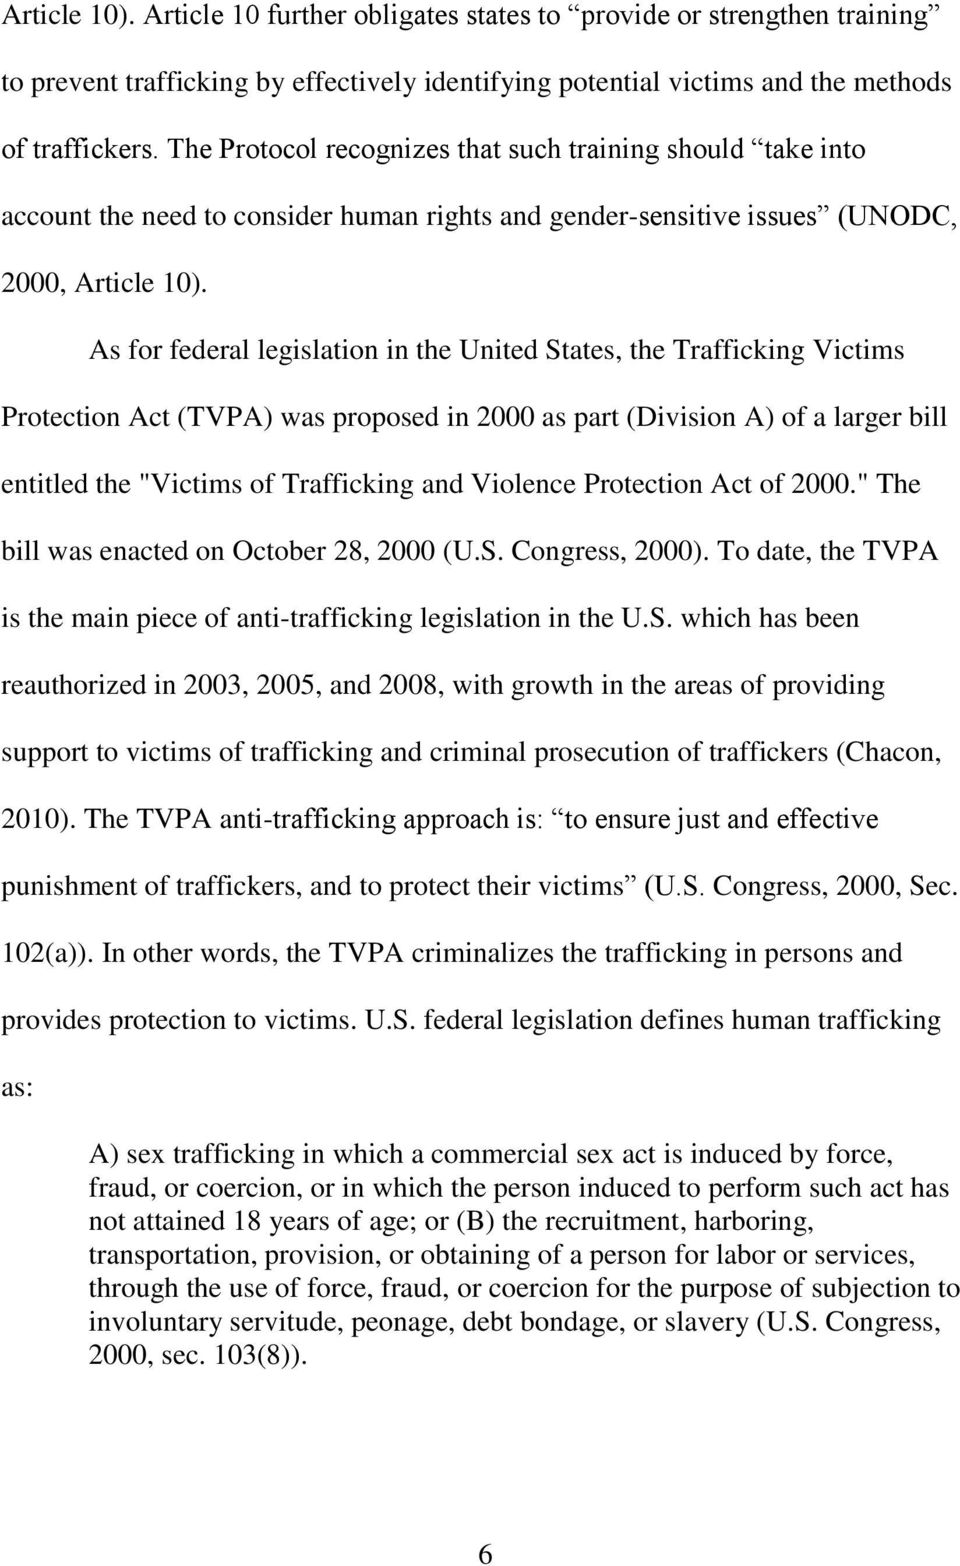 "As for federal legislation in the United States, the Trafficking Victims Protection Act (TVPA) was proposed in 2000 as part (Division A) of a larger bill entitled the ""Victims of Trafficking and"